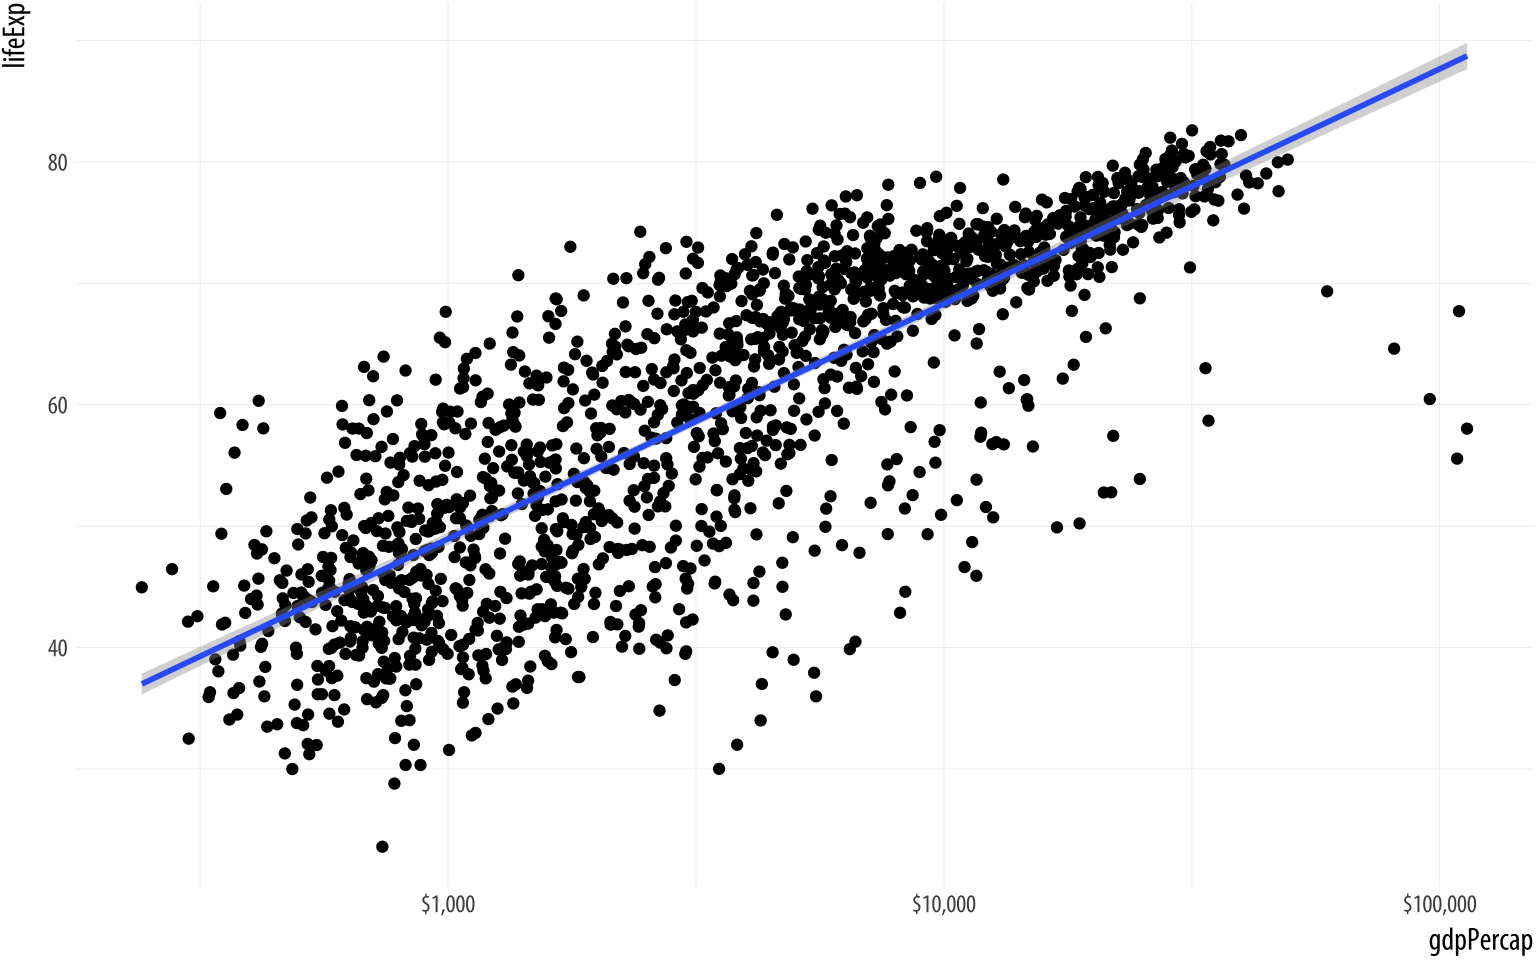 Life Expectancy vs GDP scatterplot, with a GAM smoother and a log scale on the x-axis, with better labels on the tick marks.